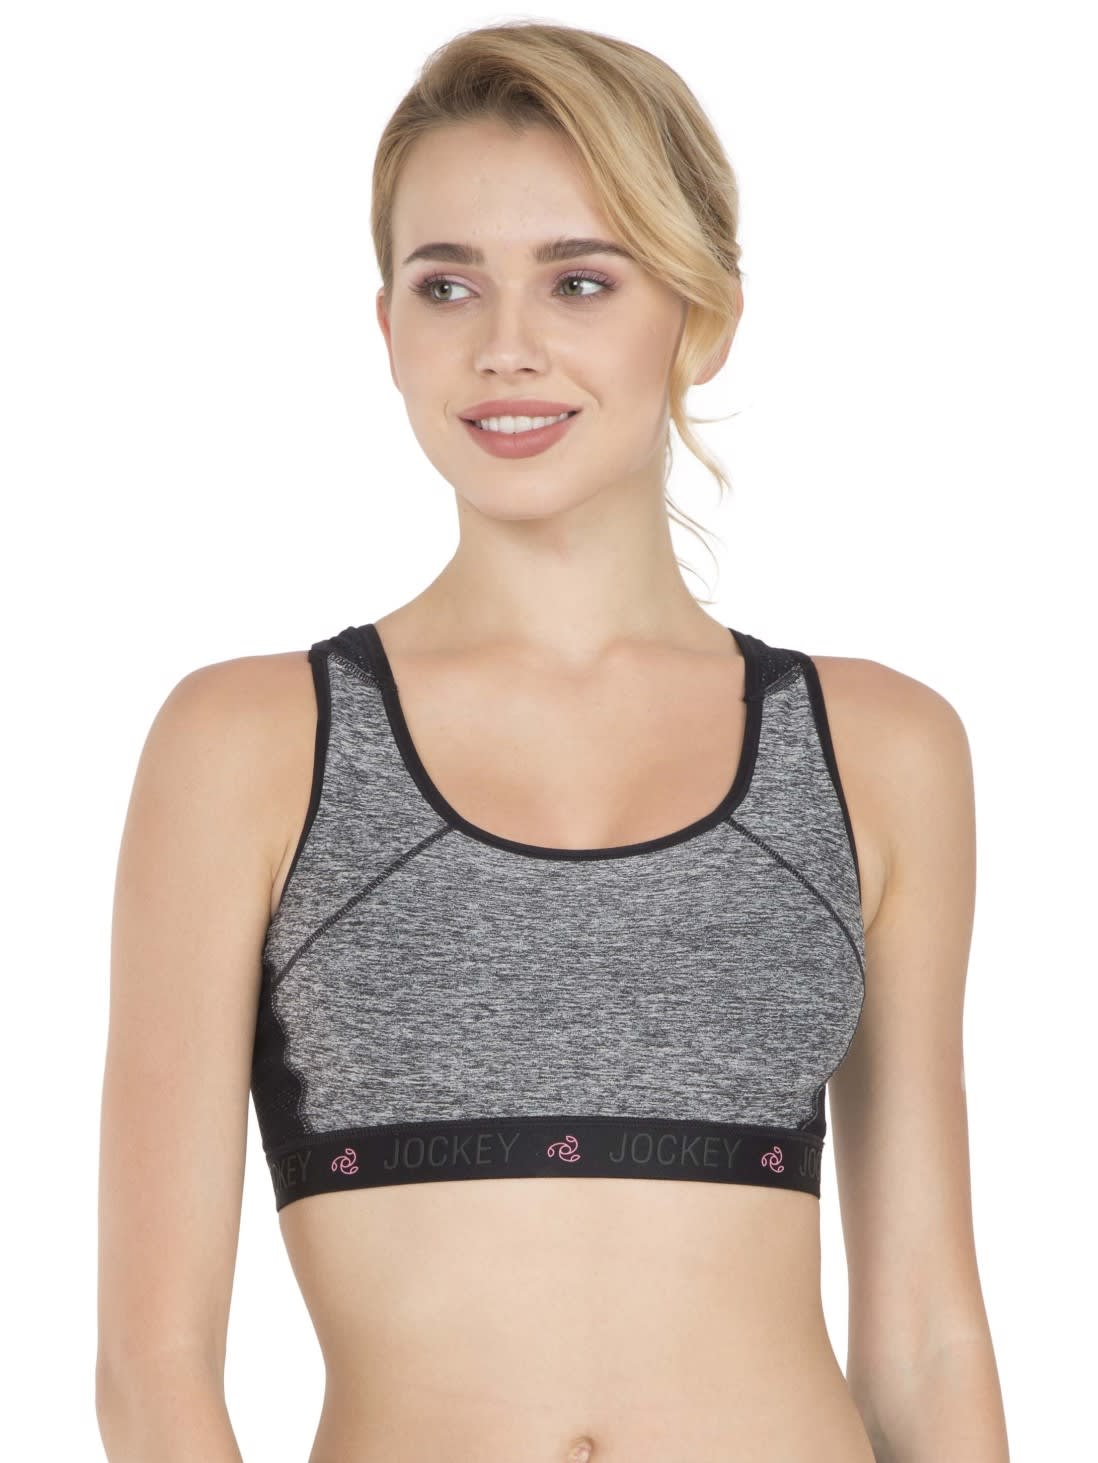 fashion design entire collection top-rated quality Jockey Women Bras | Black Melange Sports Bra